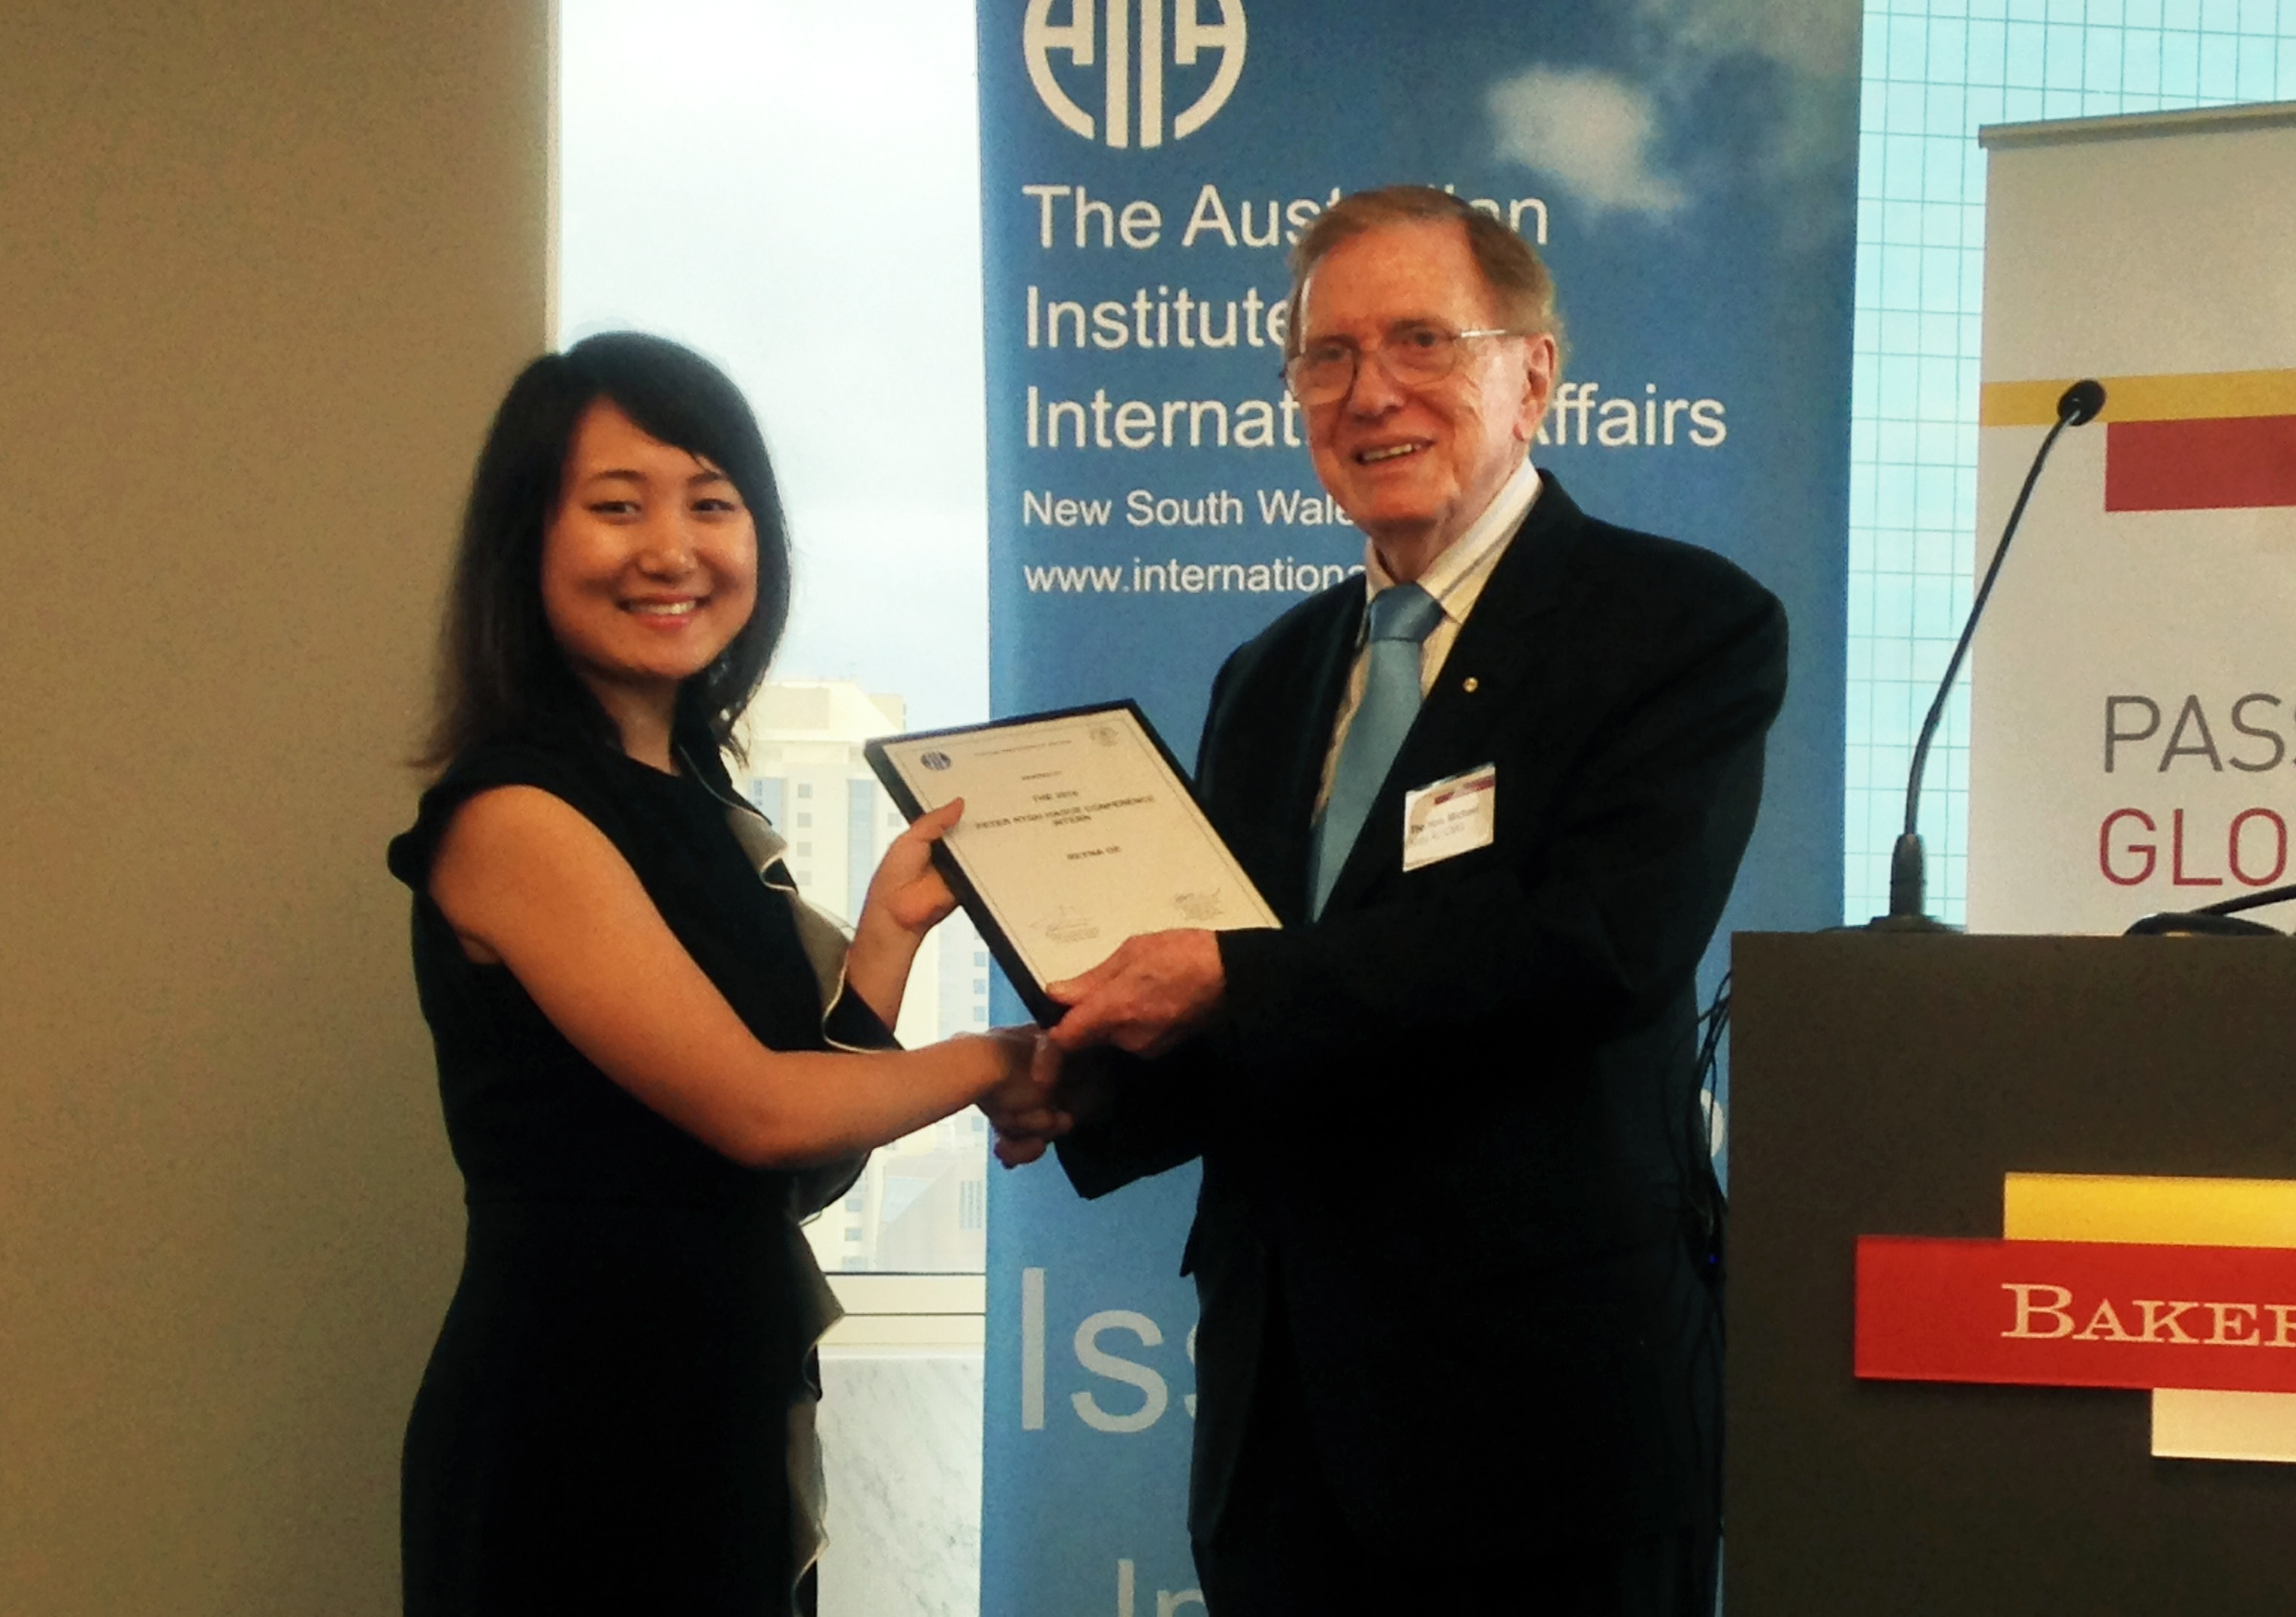 Former High Court justice Michael Kirby presents Reyna Ge with the 2016 Peter Nygh Hague Conference Internship from the Australian Institute of International Affairs and the International Law Association.